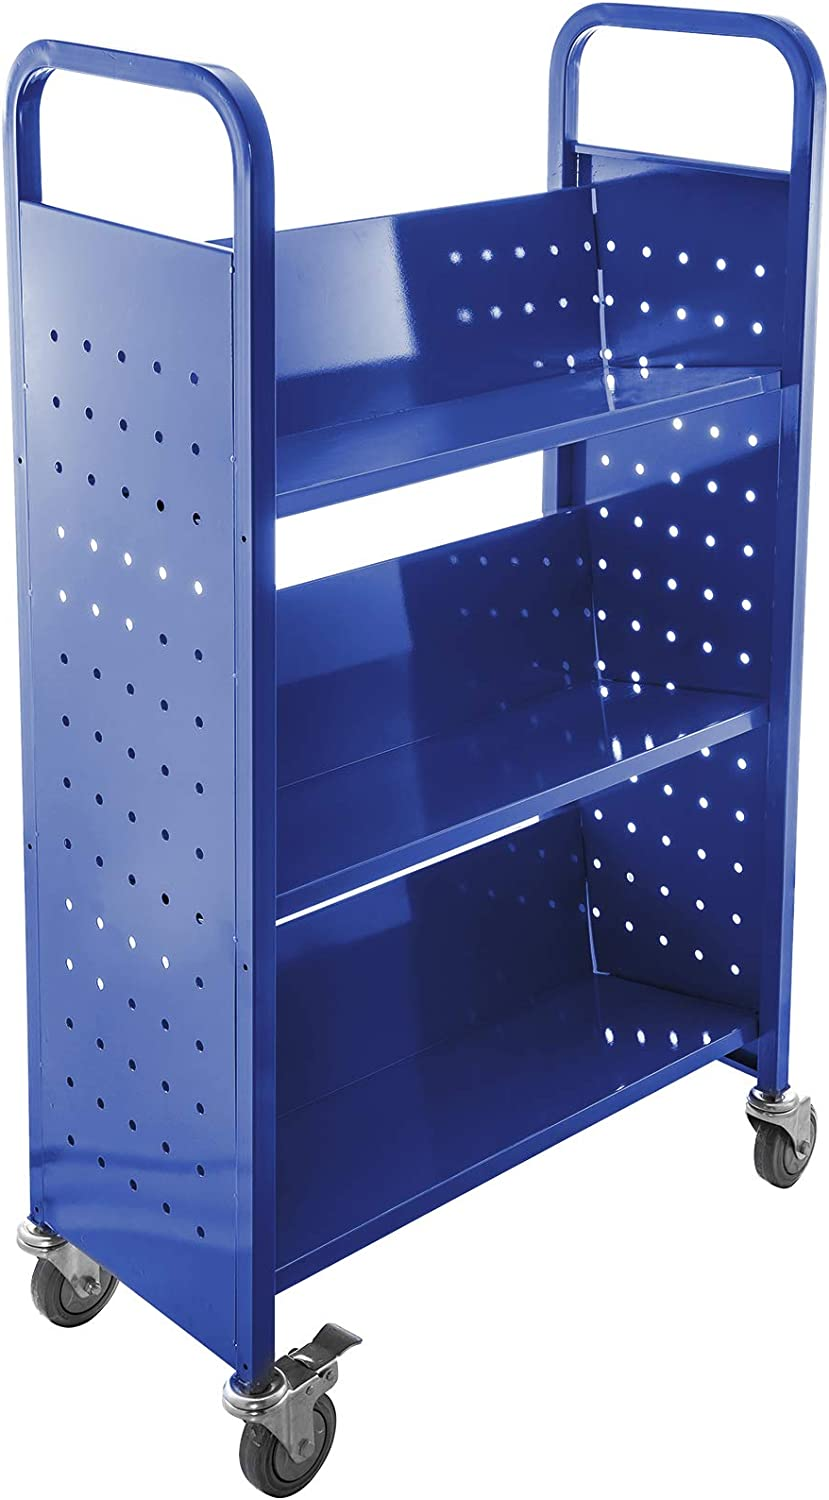 BestEquip Book Cart 200LBS Library Cart 30x14x45 Inch Rolling Book Cart Single Sided V-Shaped Sloped Shelves with 4 Inch Lockable Wheels for Home Shelves Office and School Book Truck in Blue